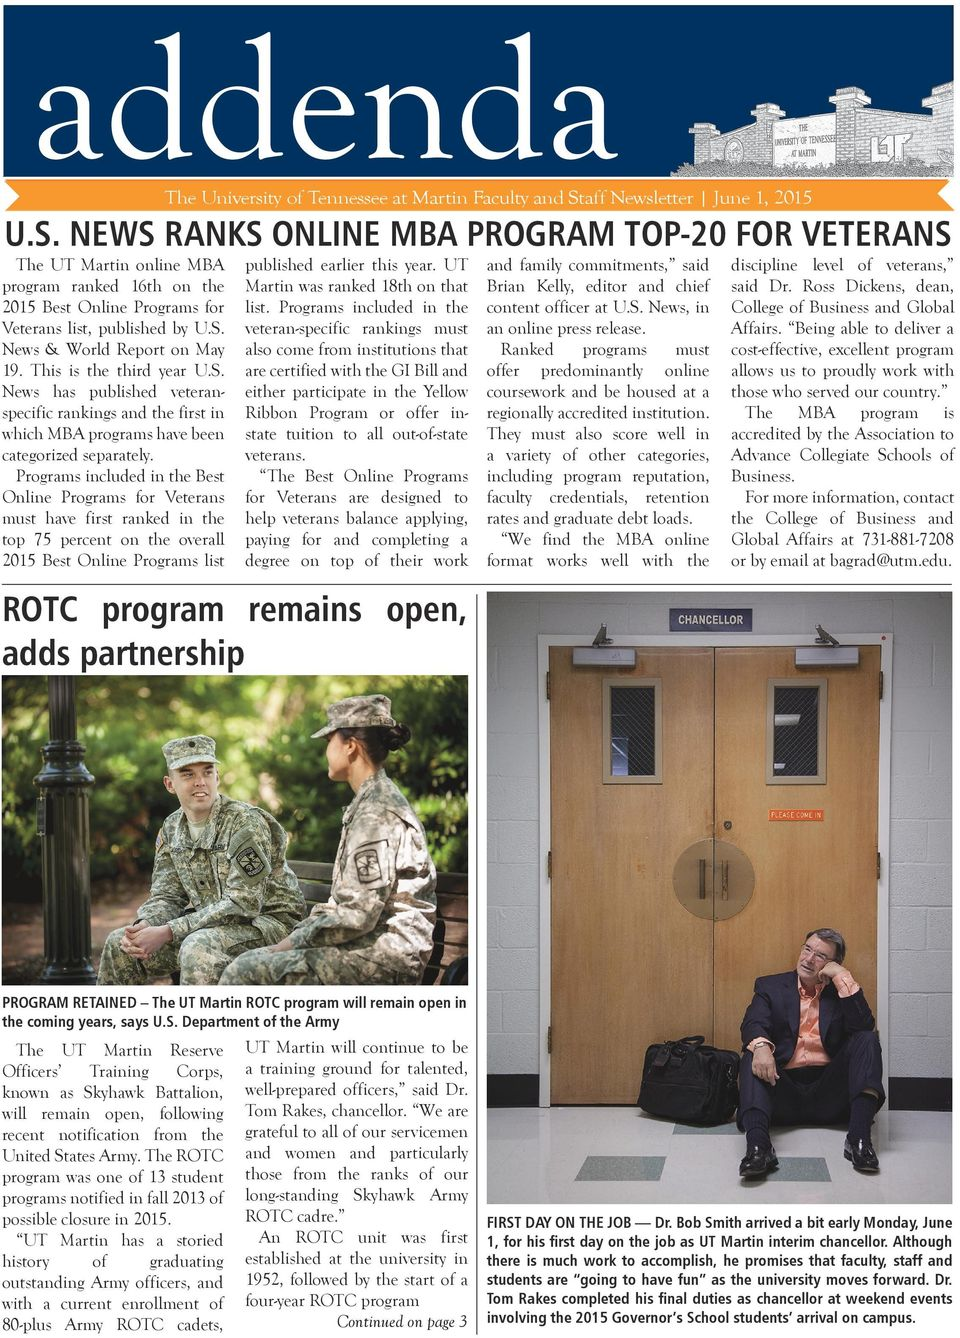 This is the third year U.S. News has published veteranspecific rankings the first in which MBA programs have been categorized separately.